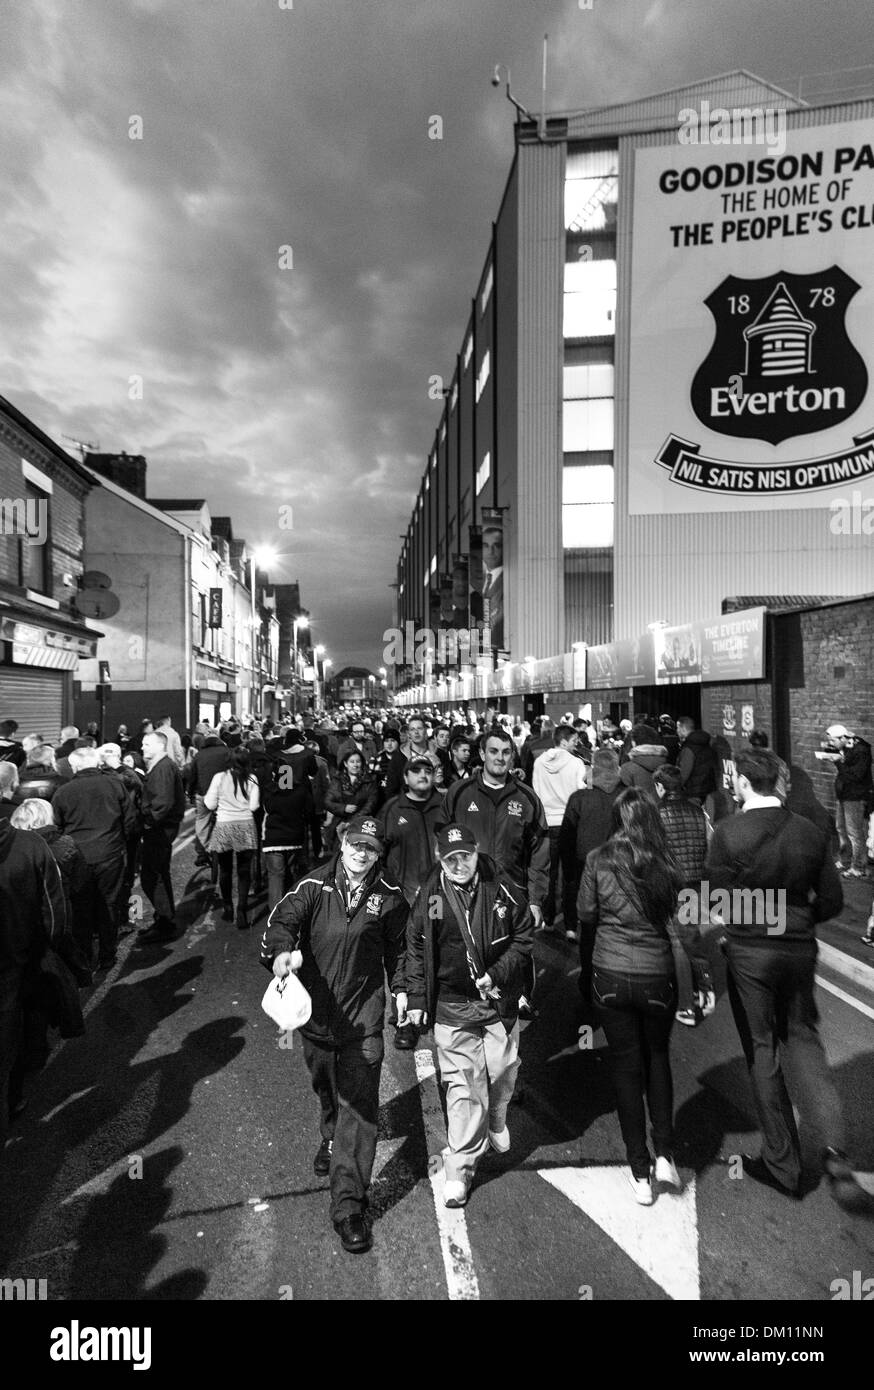 Football fans arriving at Goodison Park before the game between Everton and Newcastle Utd. Liverpool, UK Stock Photo